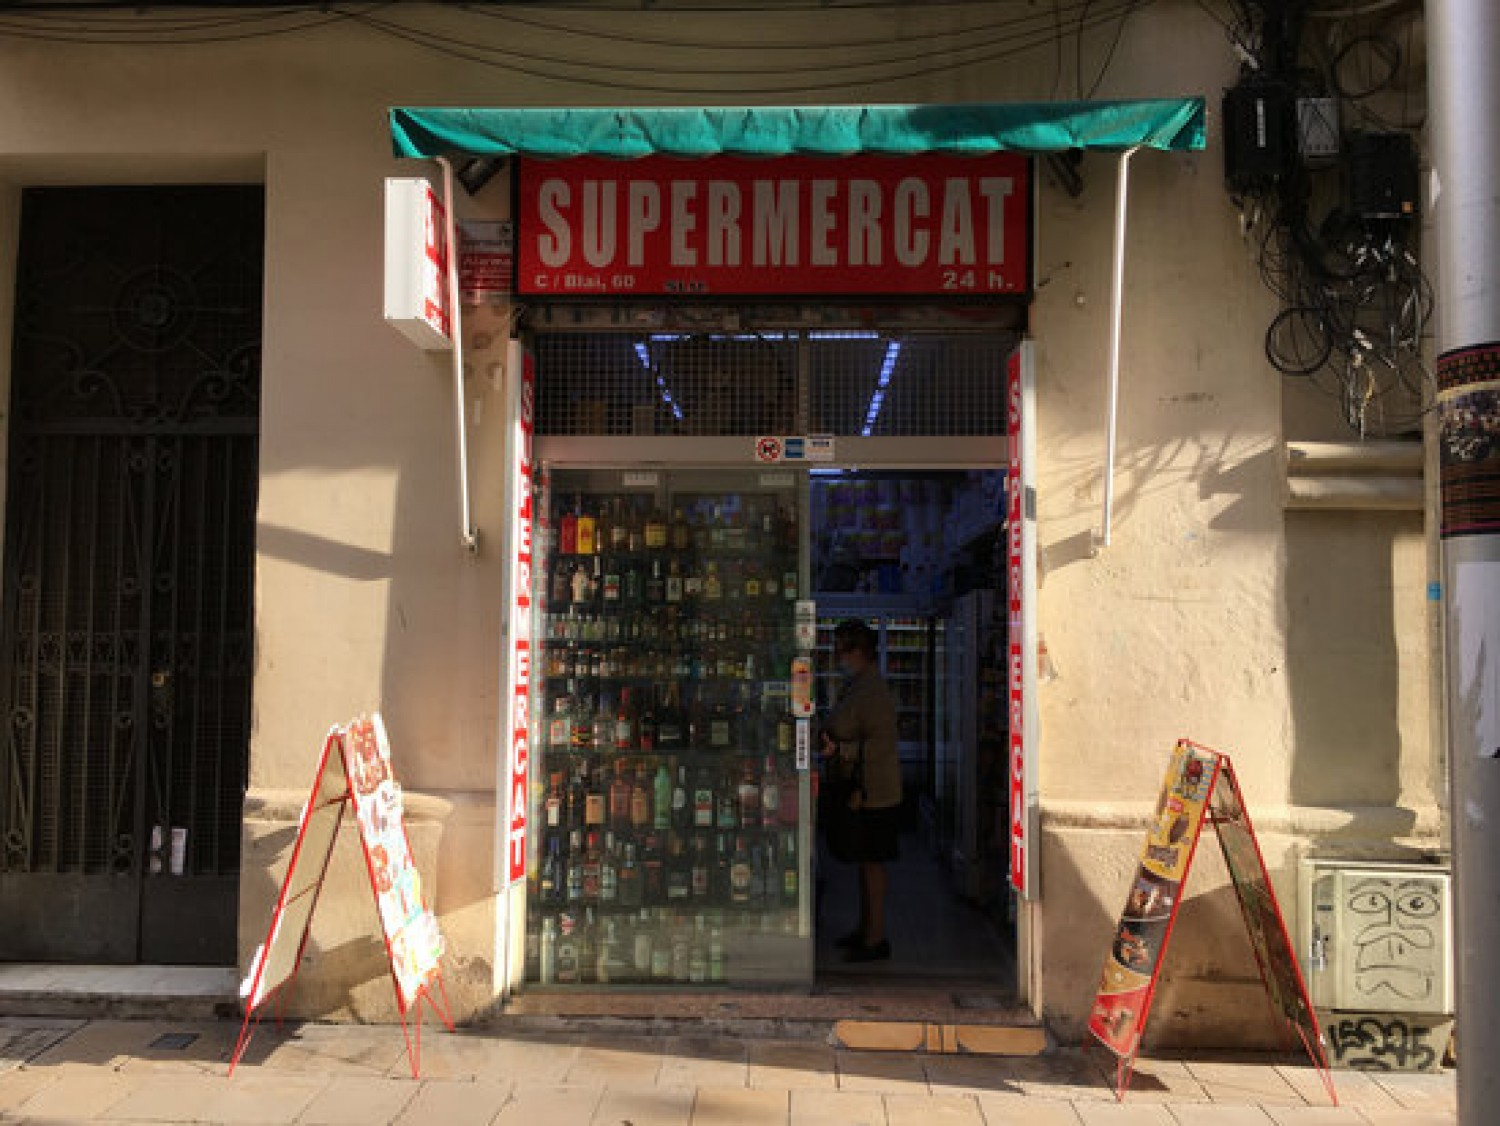 A 24-hour corner store in Barcelona